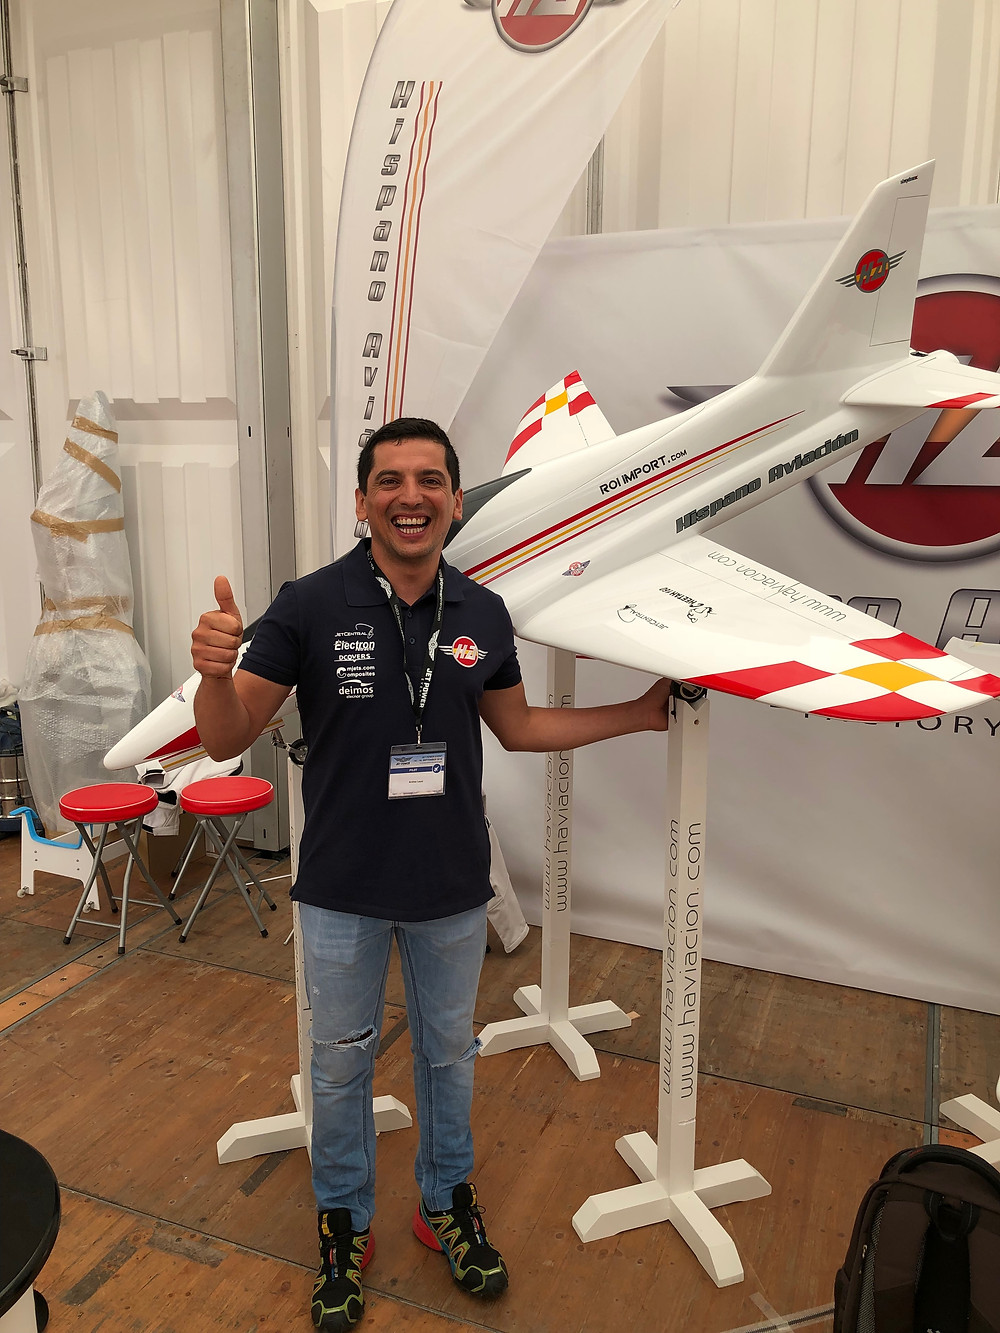 Andres Leoni, Hispano Aviation display pilot and Spanish F3S champion